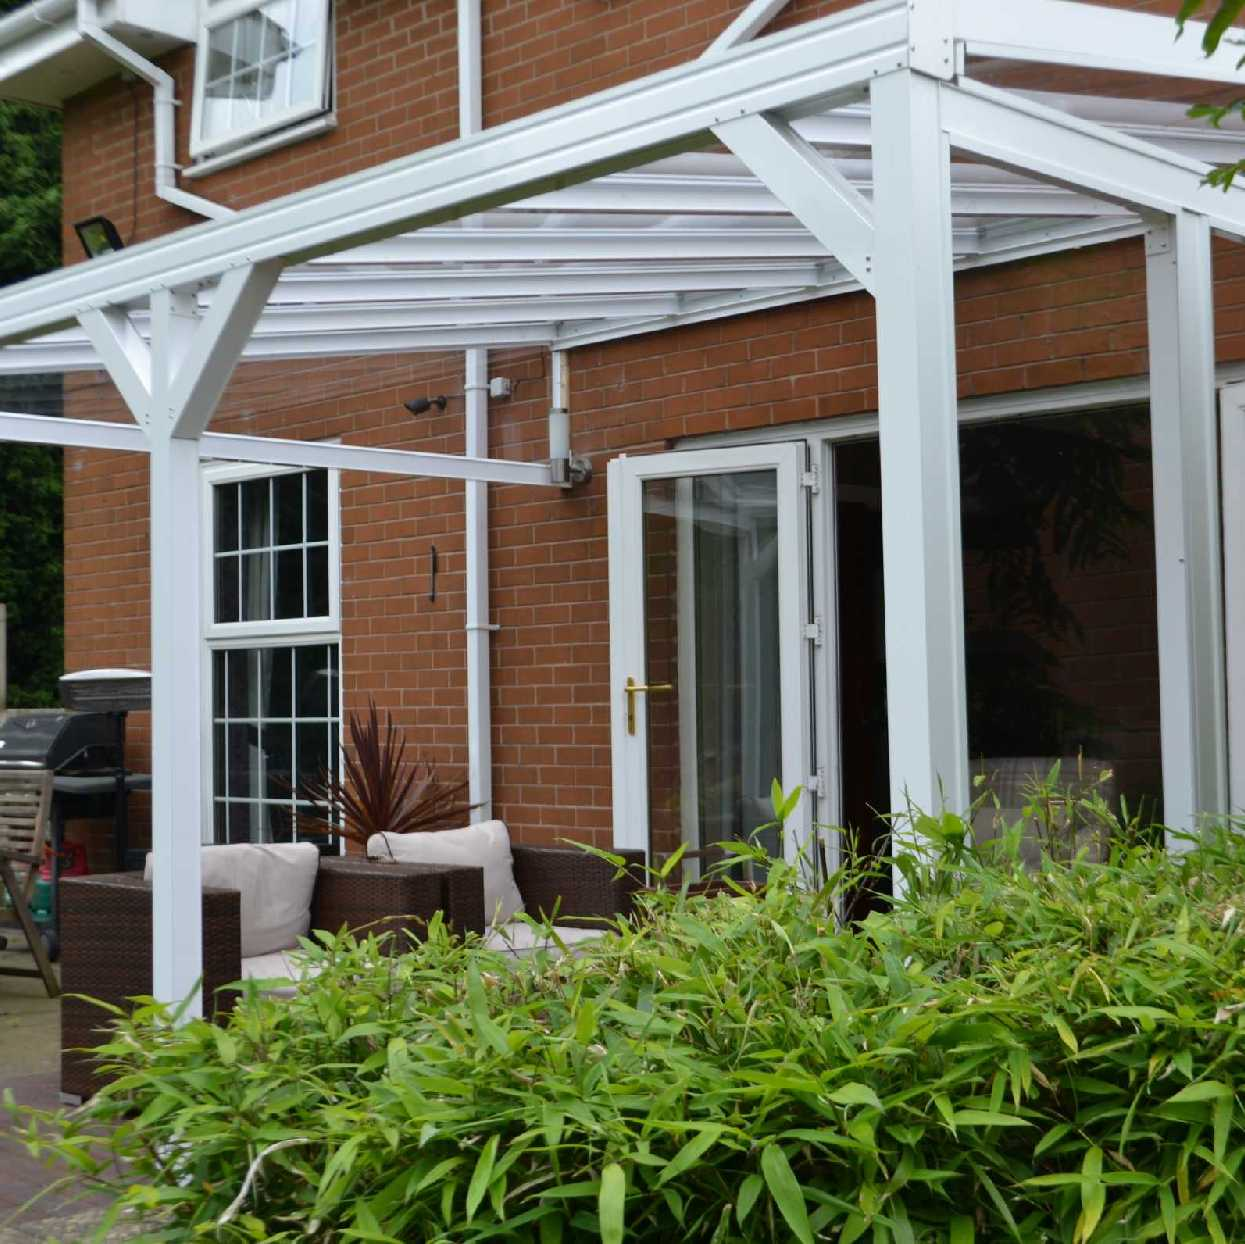 Omega Smart White Lean-To Canopy with 6mm Glass Clear Plate Polycarbonate Glazing - 7.7m (W) x 1.5m (P), (4) Supporting Posts from Omega Build